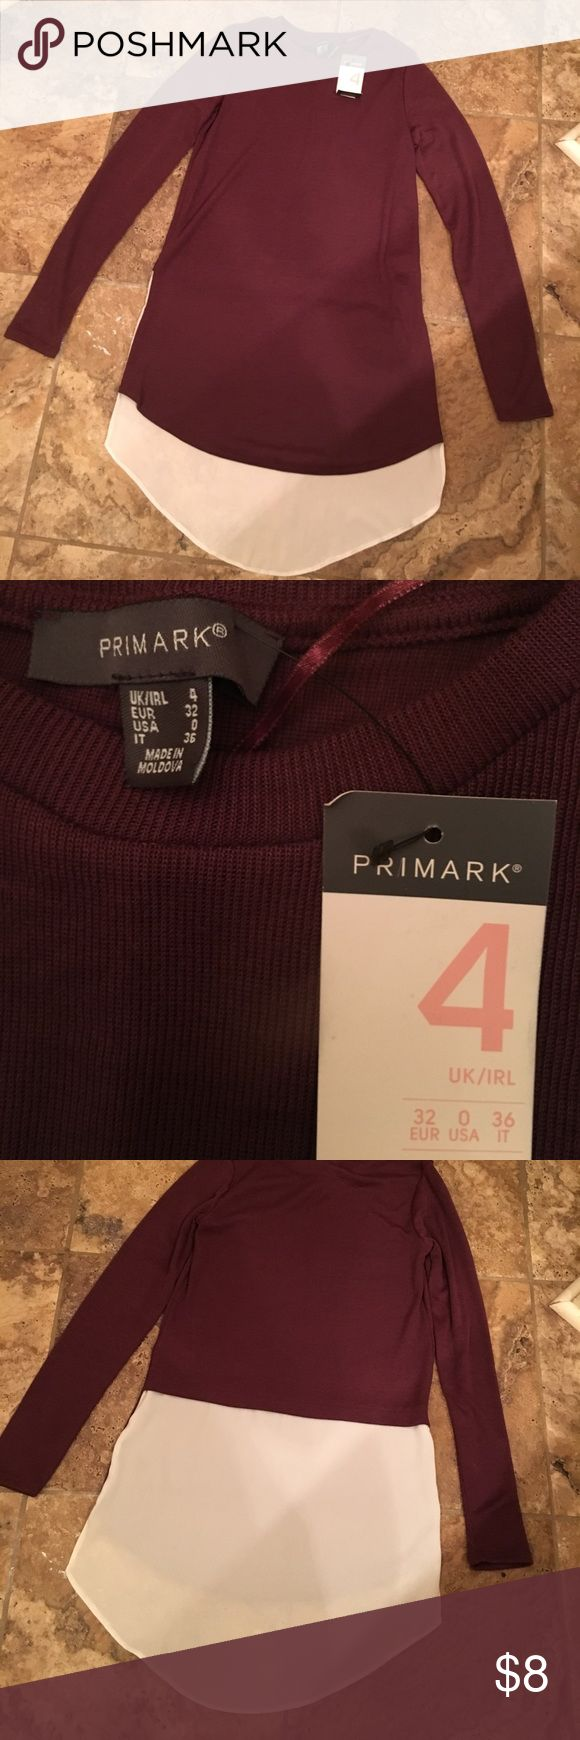 SOLD NWT Primark mixed media sweater Brand New with tags! Cute sweater with white chiffon blouse material in back. Length is longer in the back. Primark Sweaters